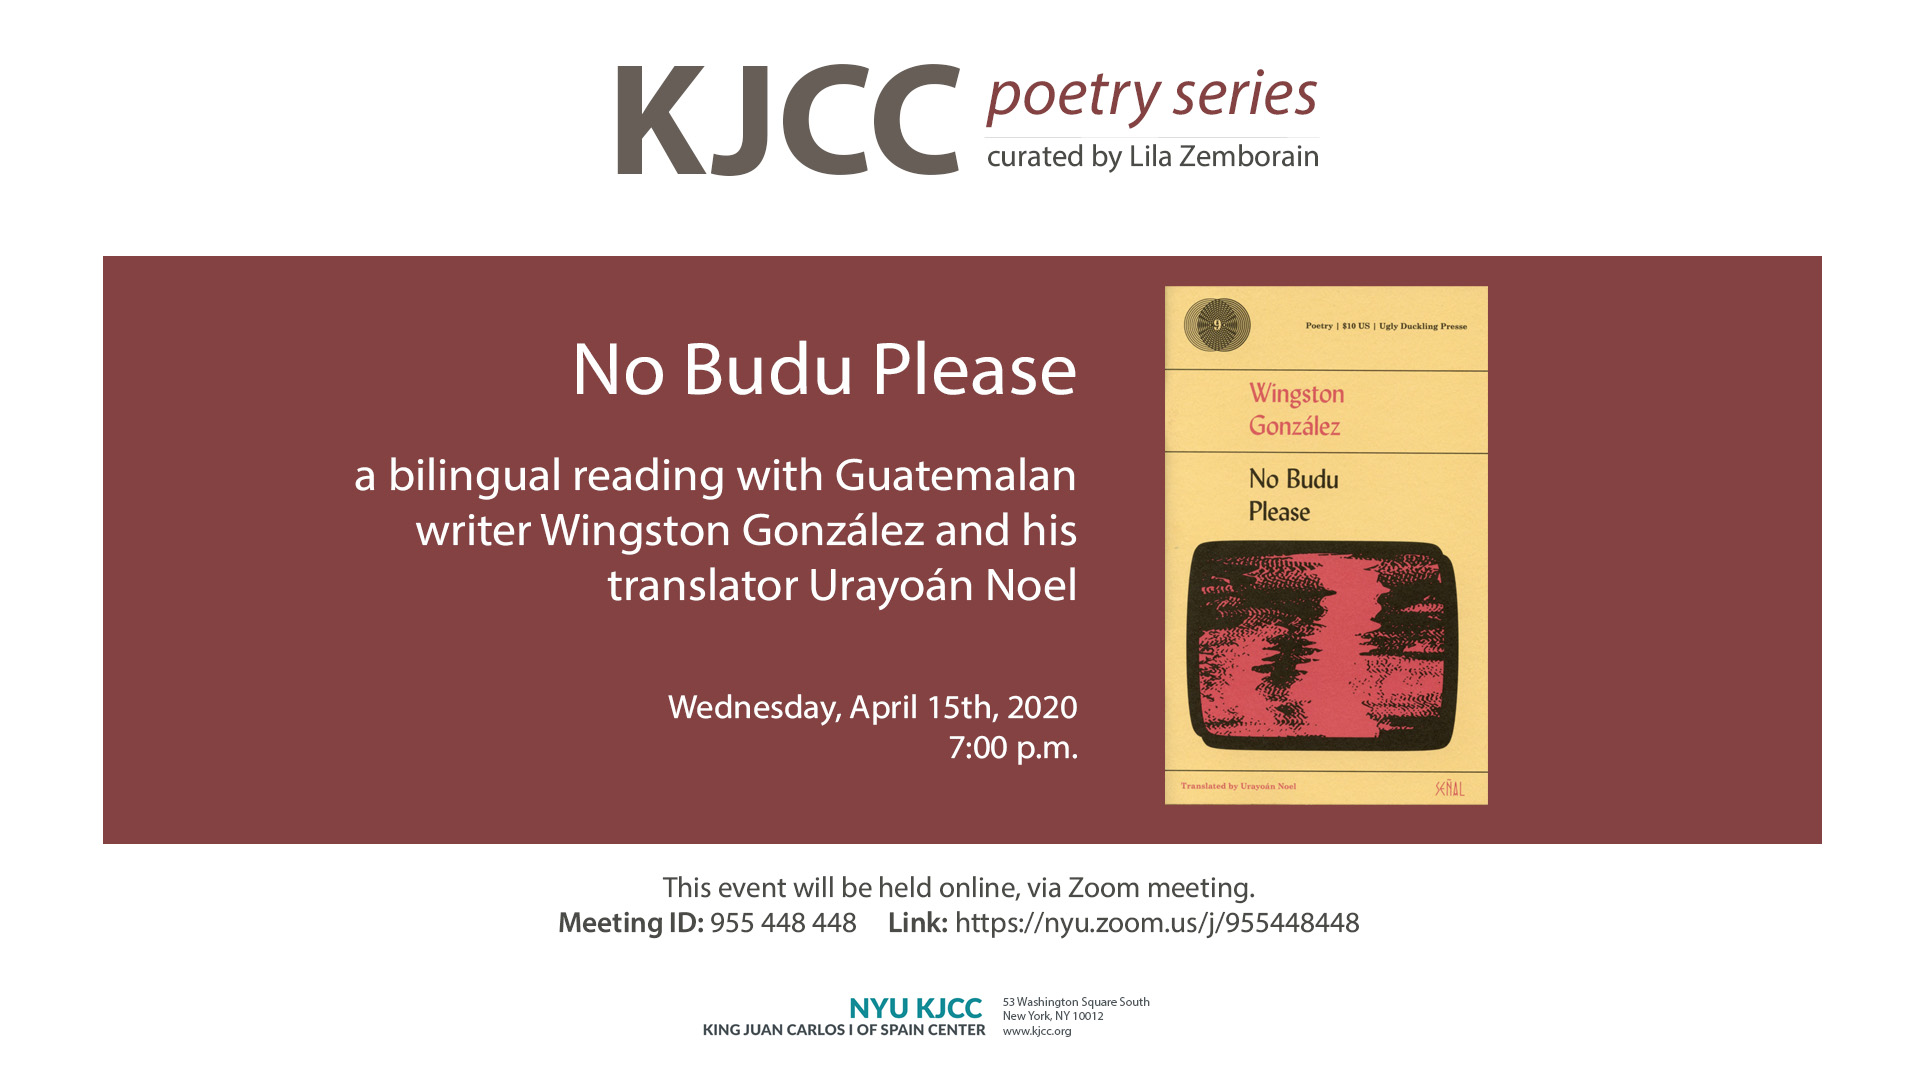 Image from Online Event | KJCC Poetry Series | No Budu Please, a bilingual reading with Wingston González and Urayoán Noel